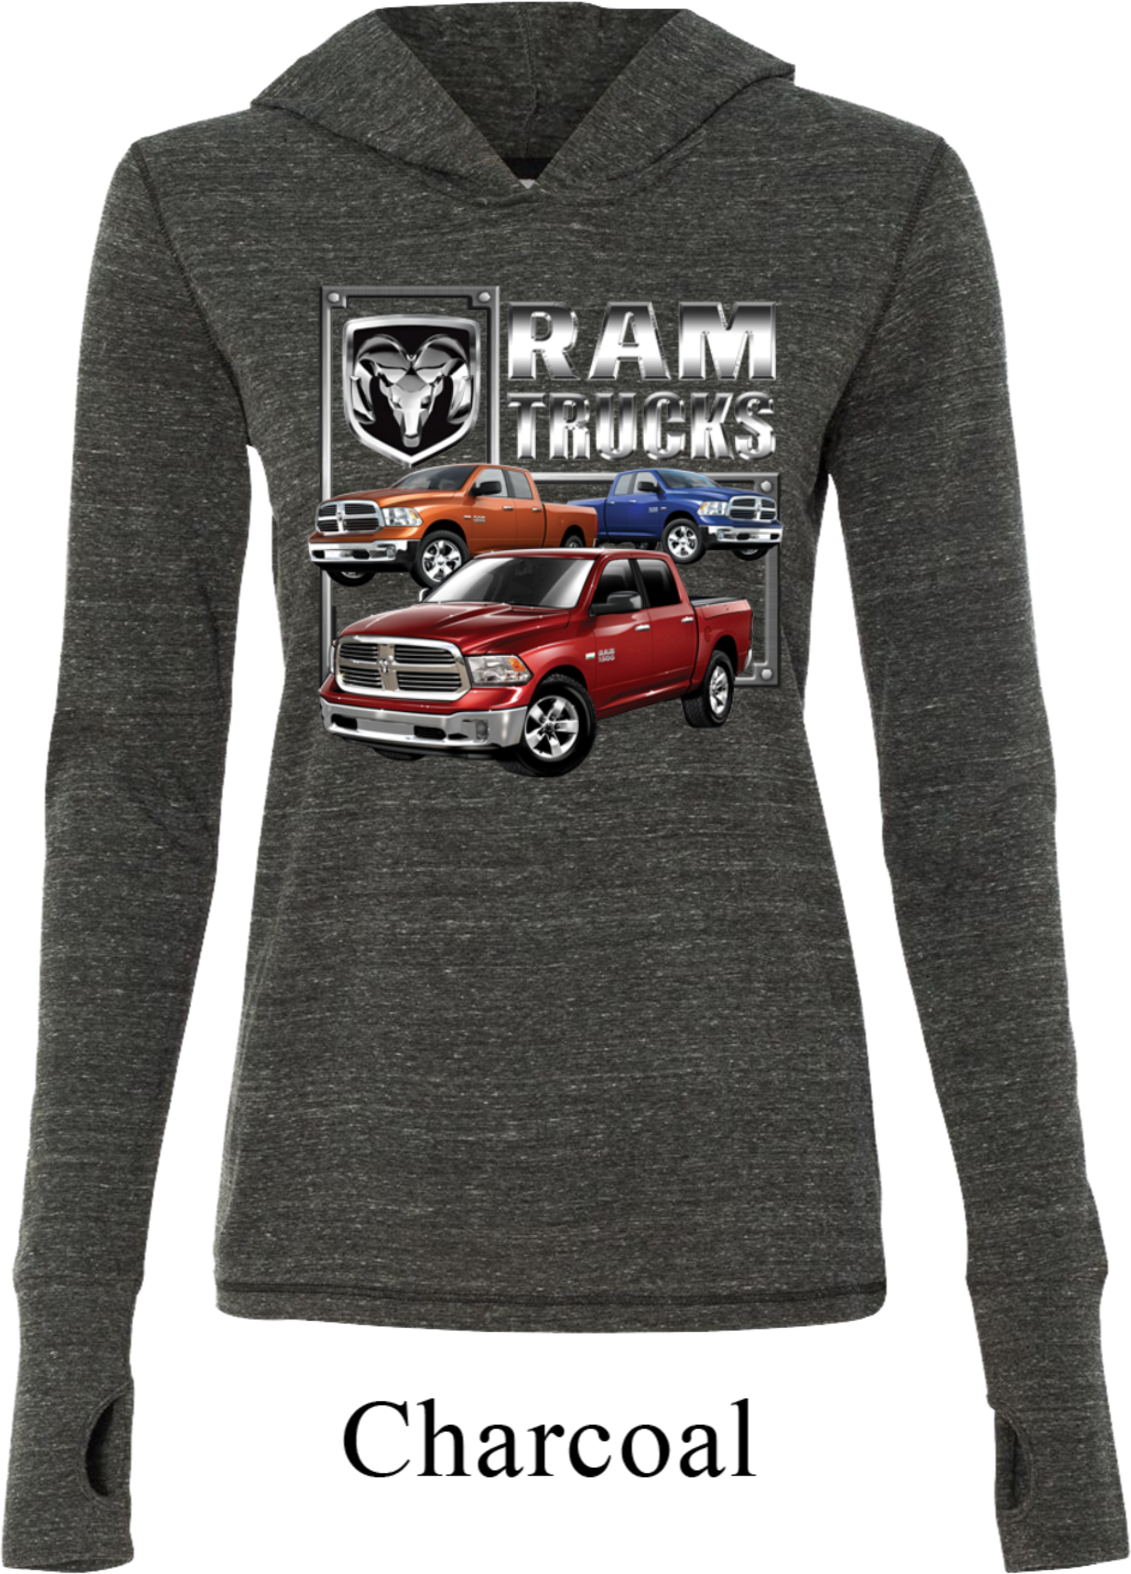 Dodge Ram Hoodie >> Ladies Shirt Ram Trucks Tri Blend Hoodie Tee - Dodge Ram Trucks Ladies Dodge Shirts